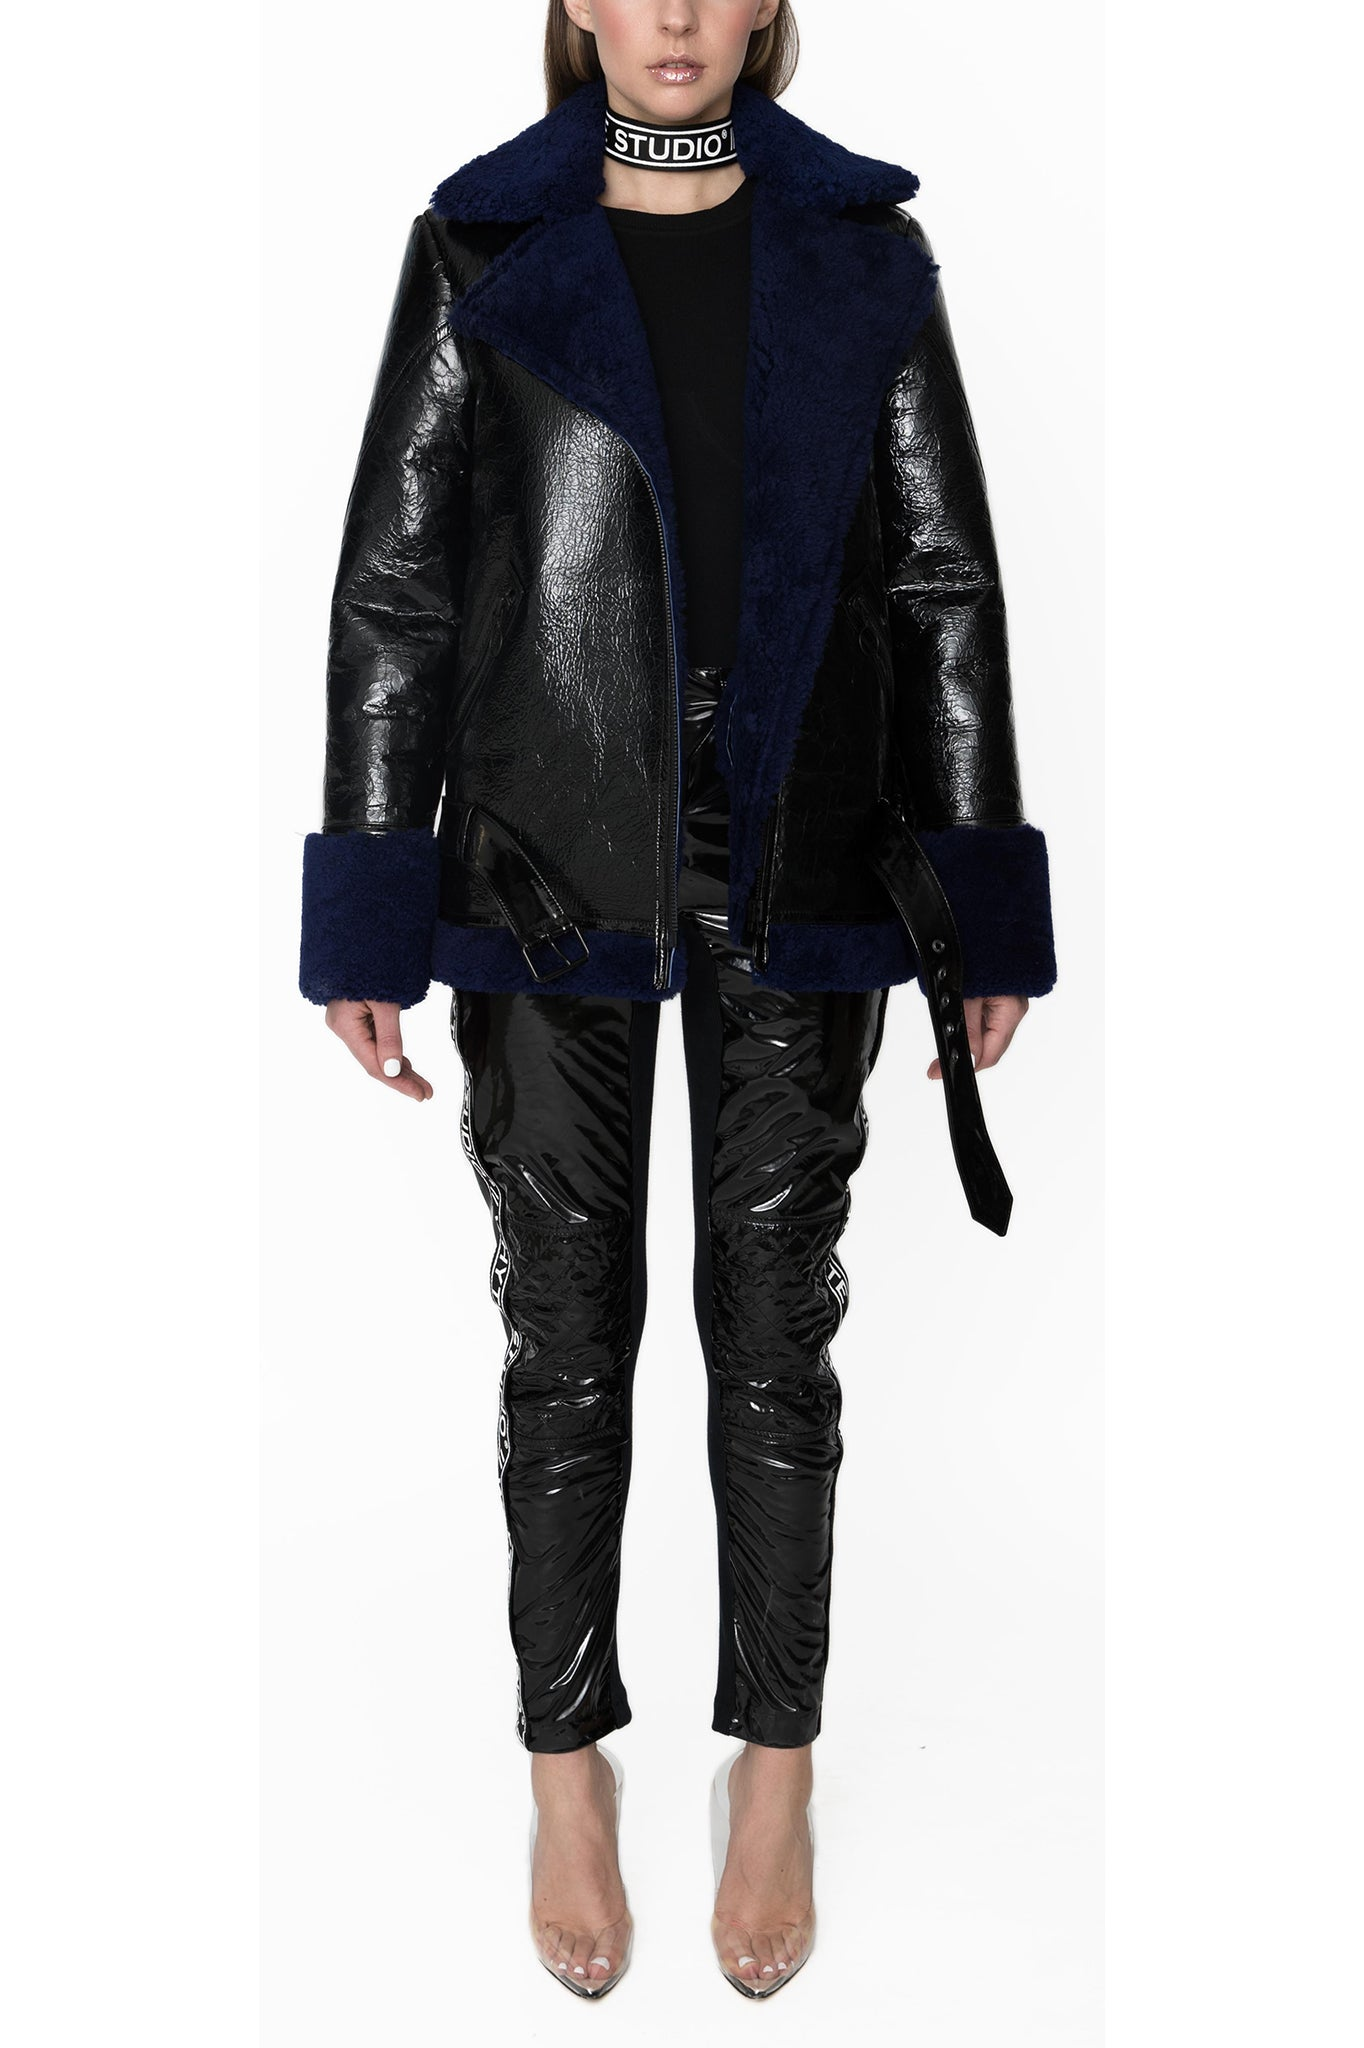 Whyte Studio Black Leather Jacket with Blue Shearling Trim